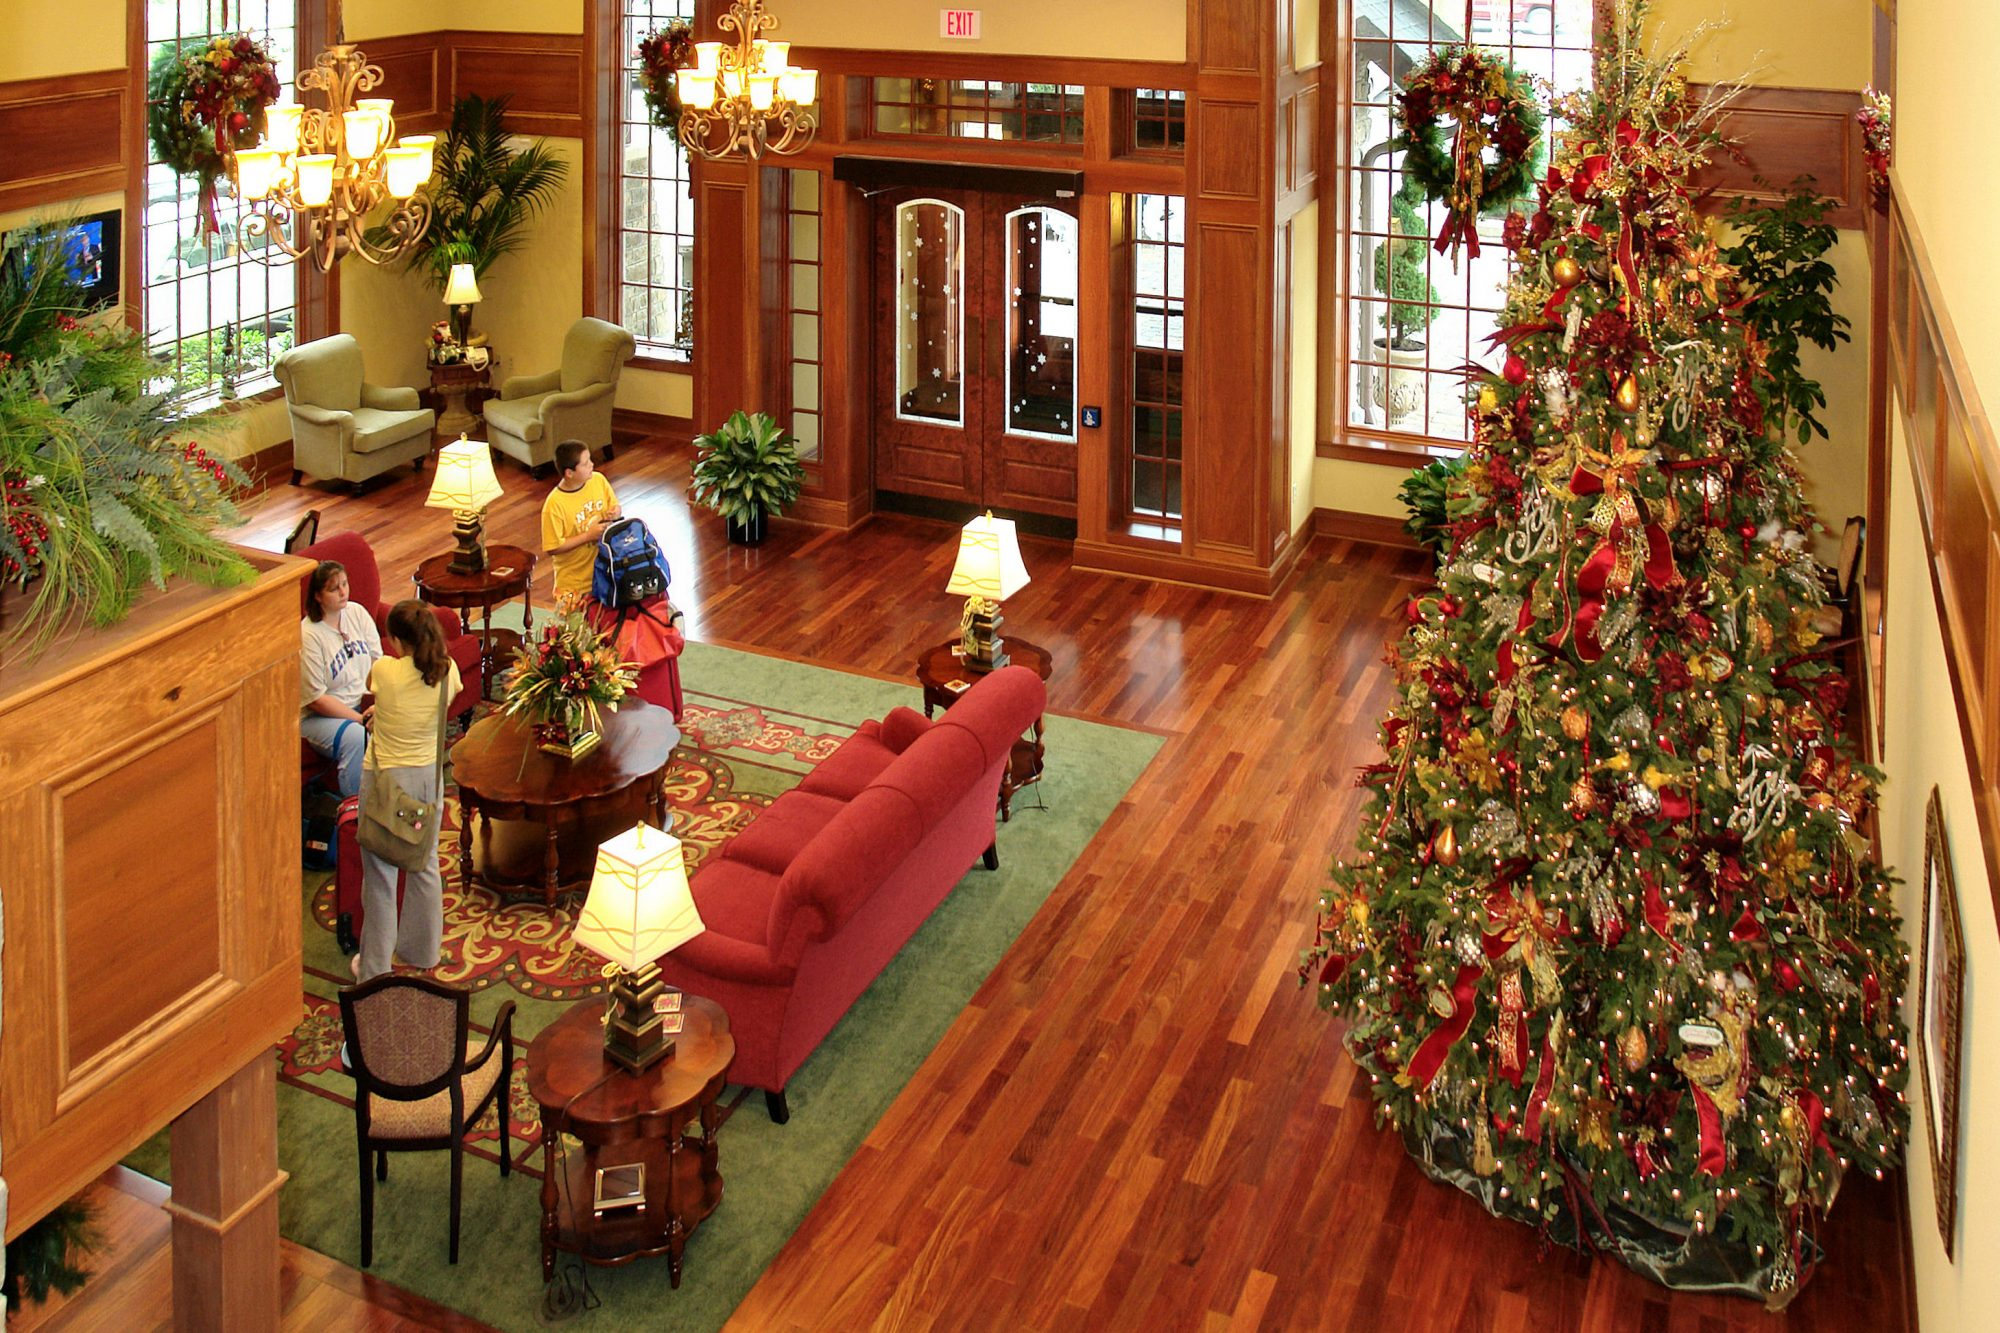 Celebrate Christmas Year-Round at This Very Merry Tennessee Hotel